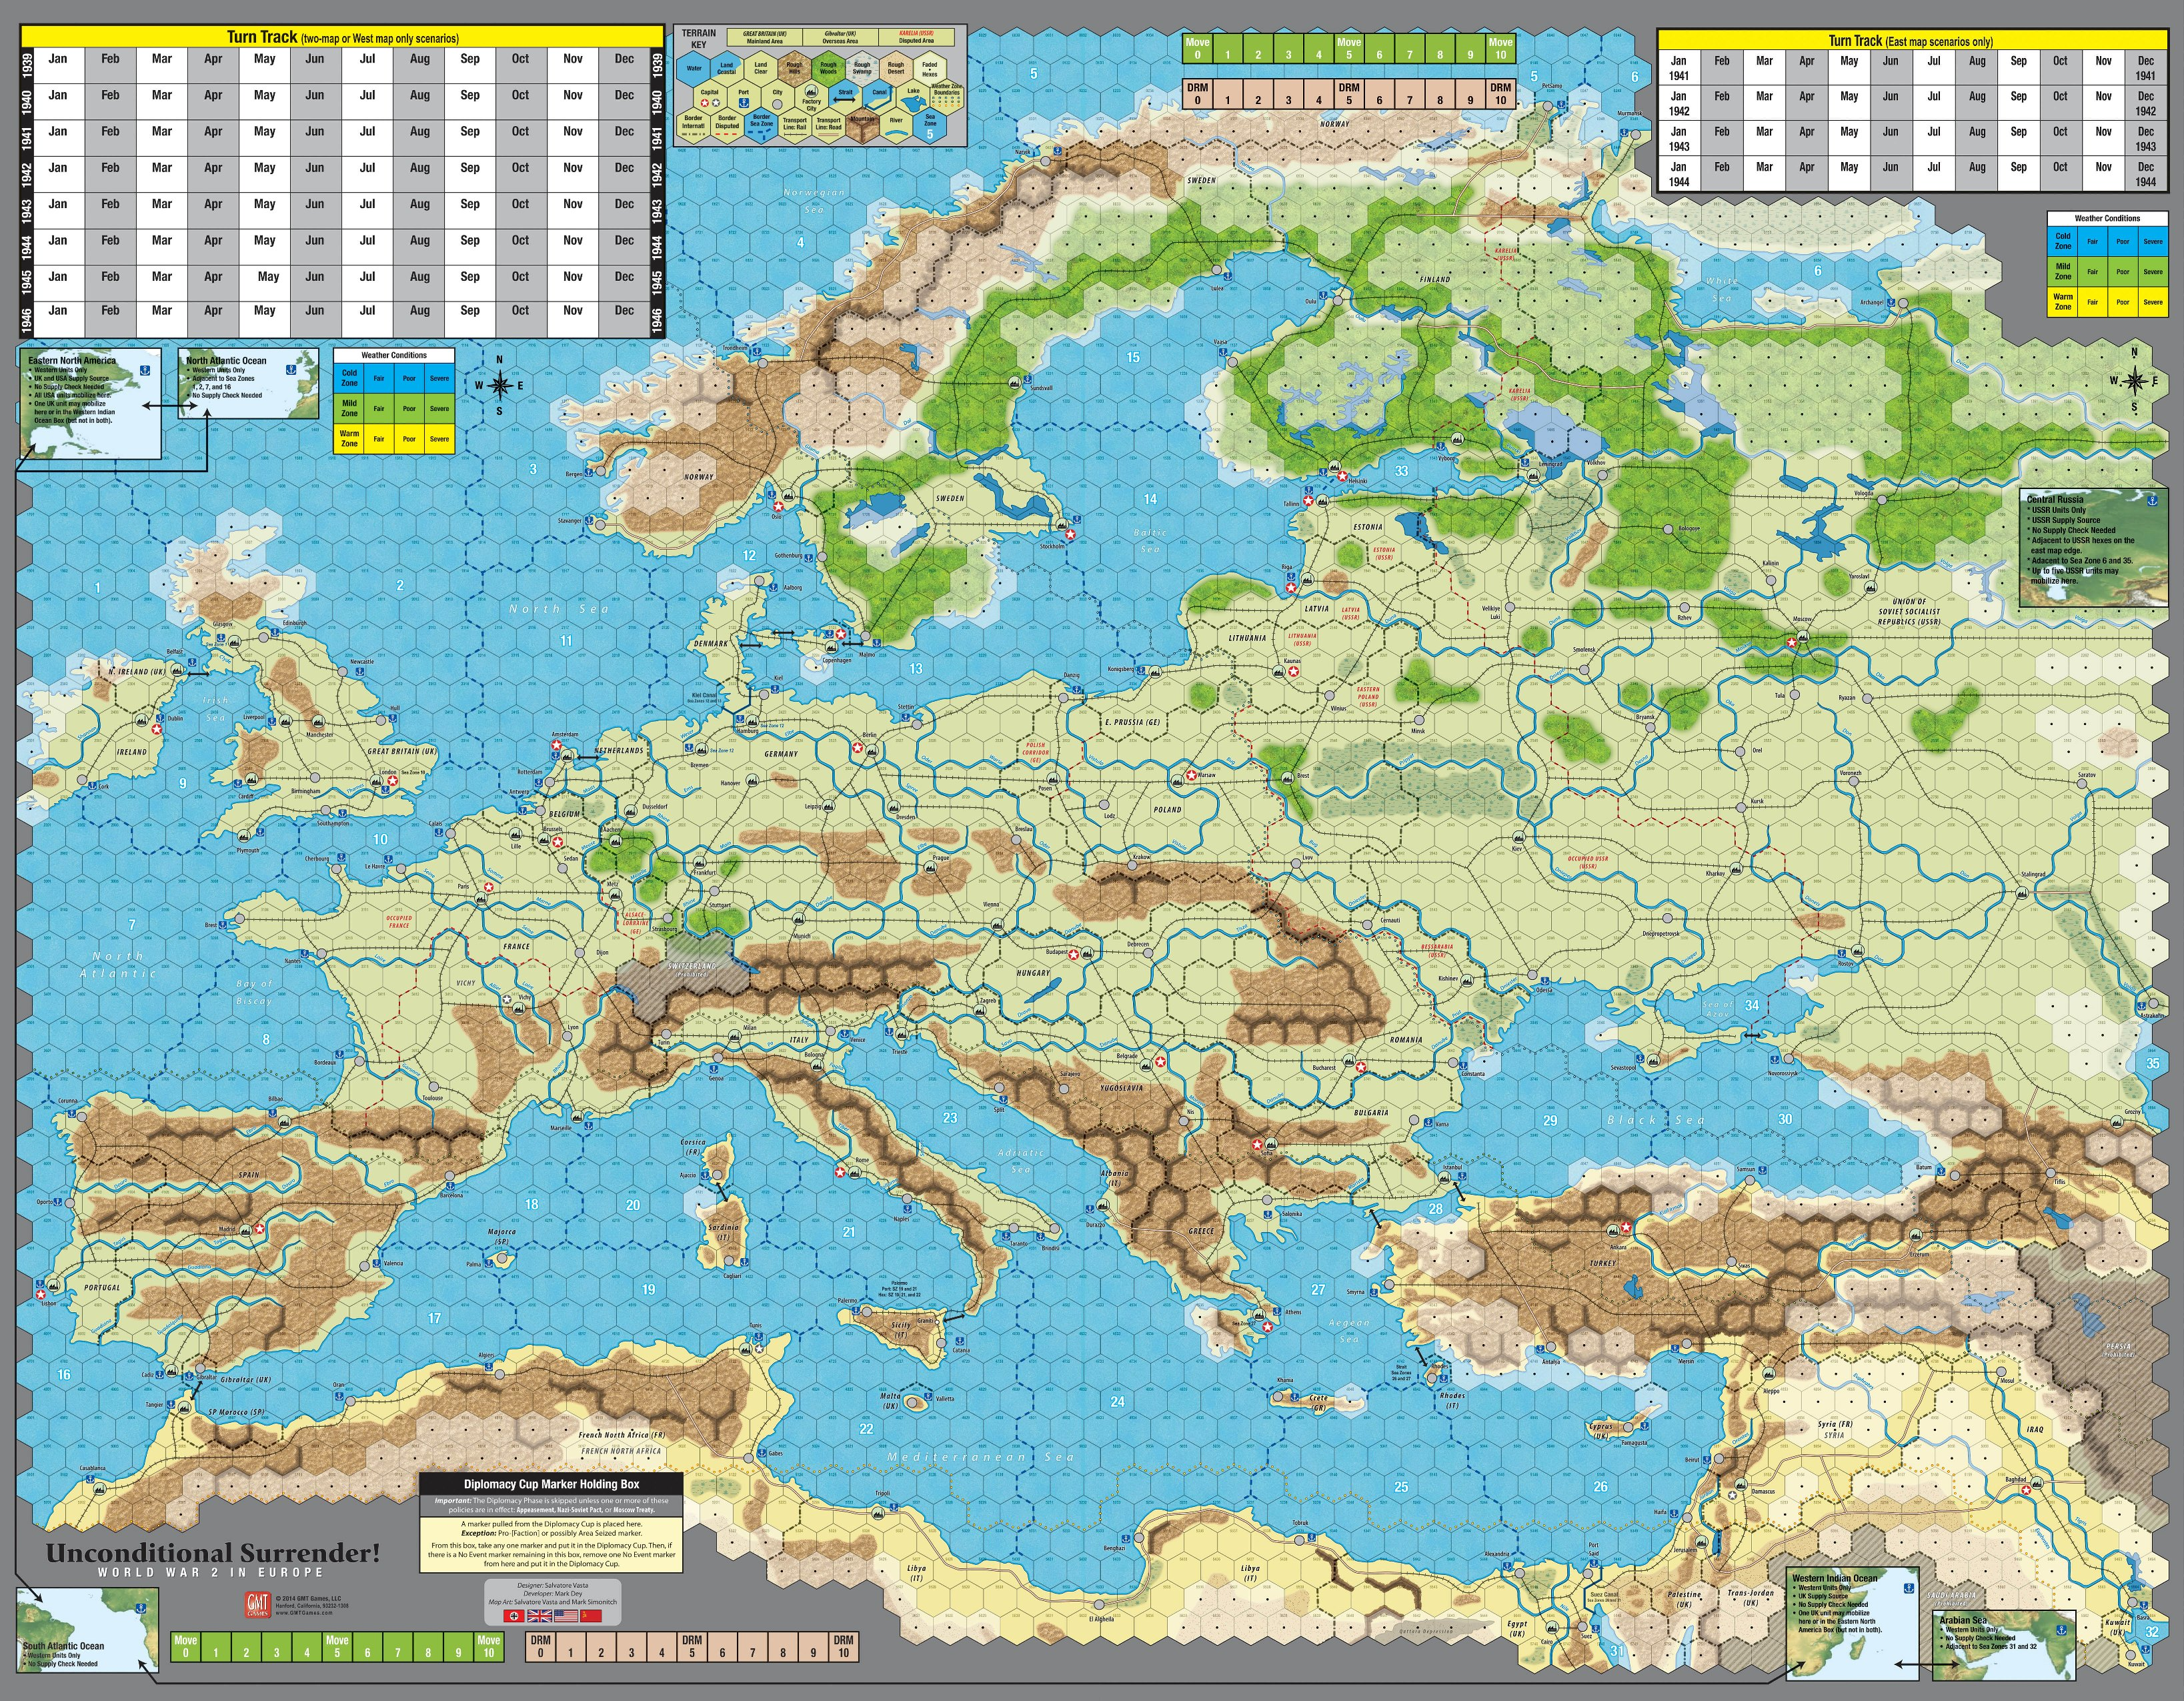 Gmt games unconditional surrender 2nd printing map preview gumiabroncs Image collections